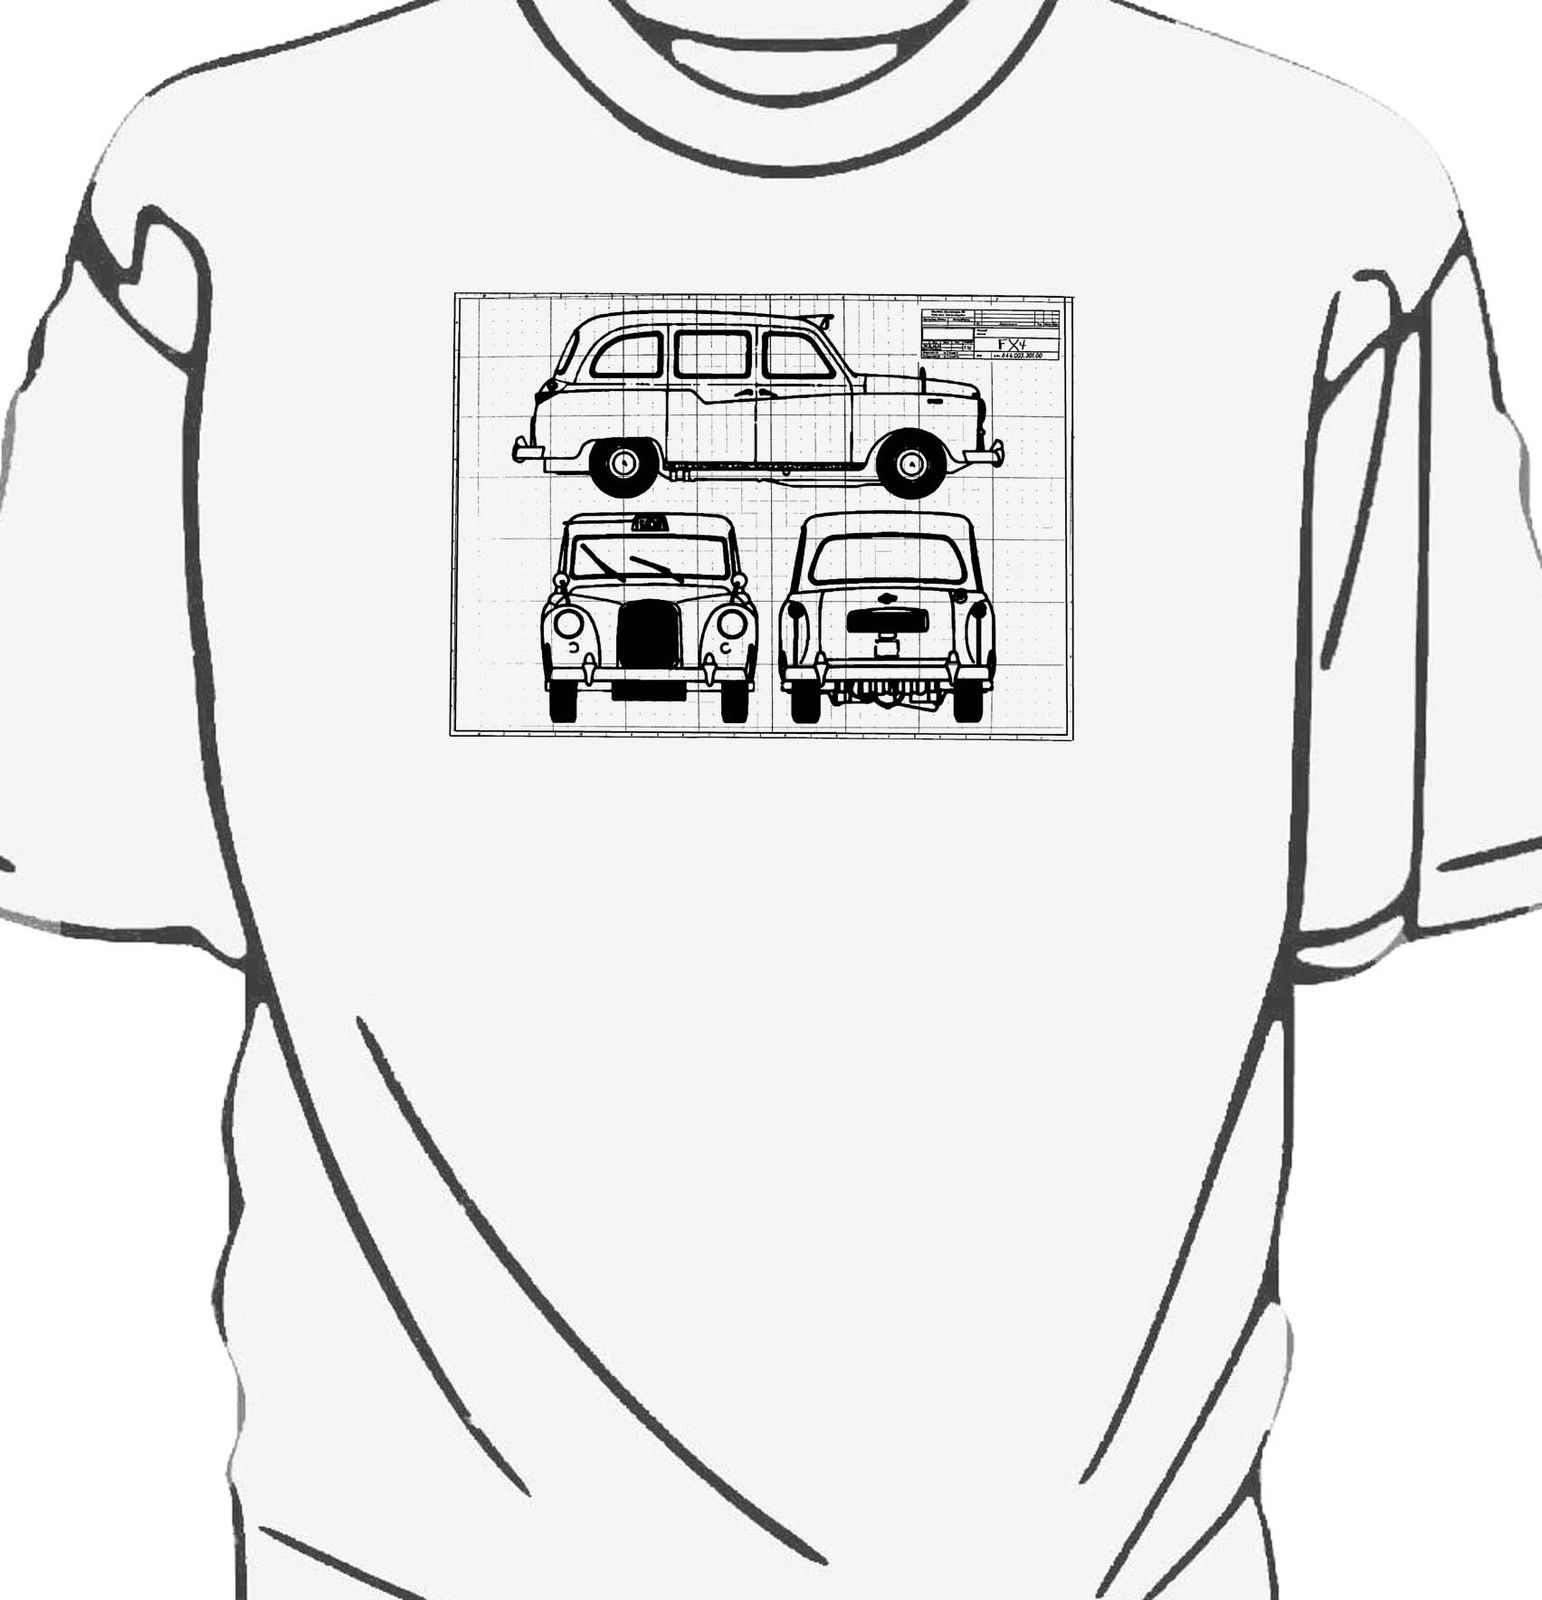 London Black Cab. FX4 taxi Blueprint style t-shirt